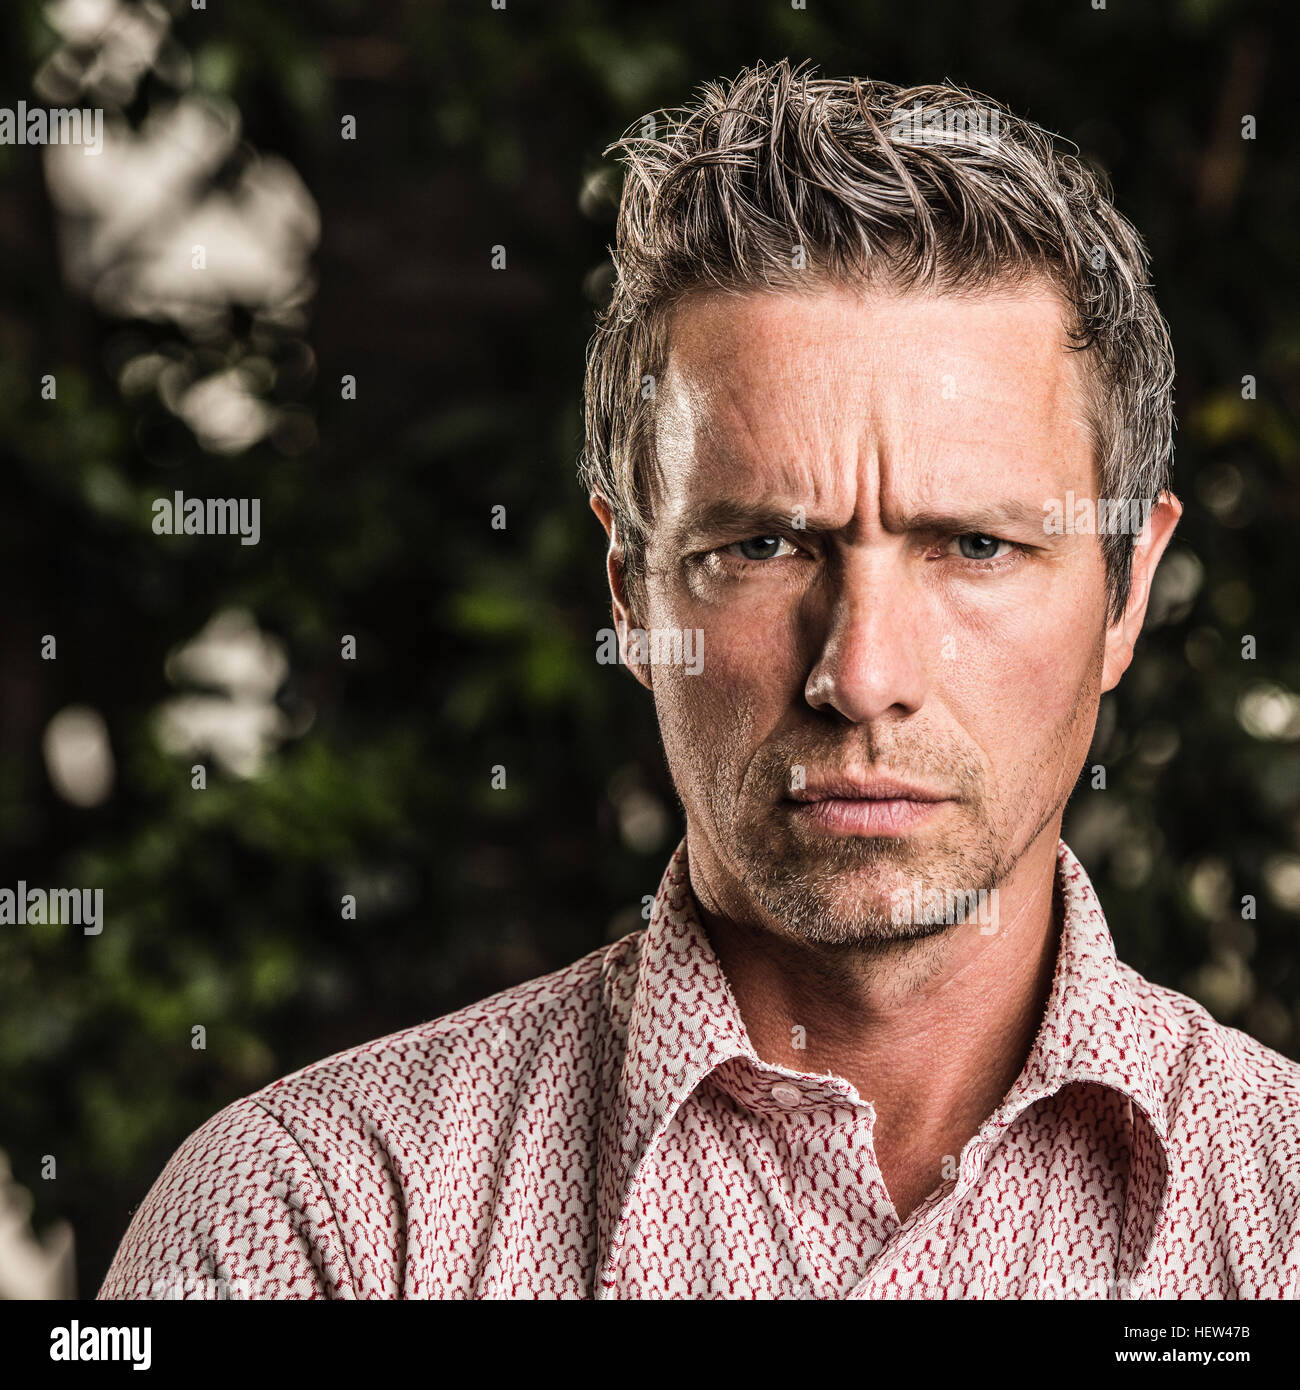 Portrait of man looking at camera scowling - Stock Image